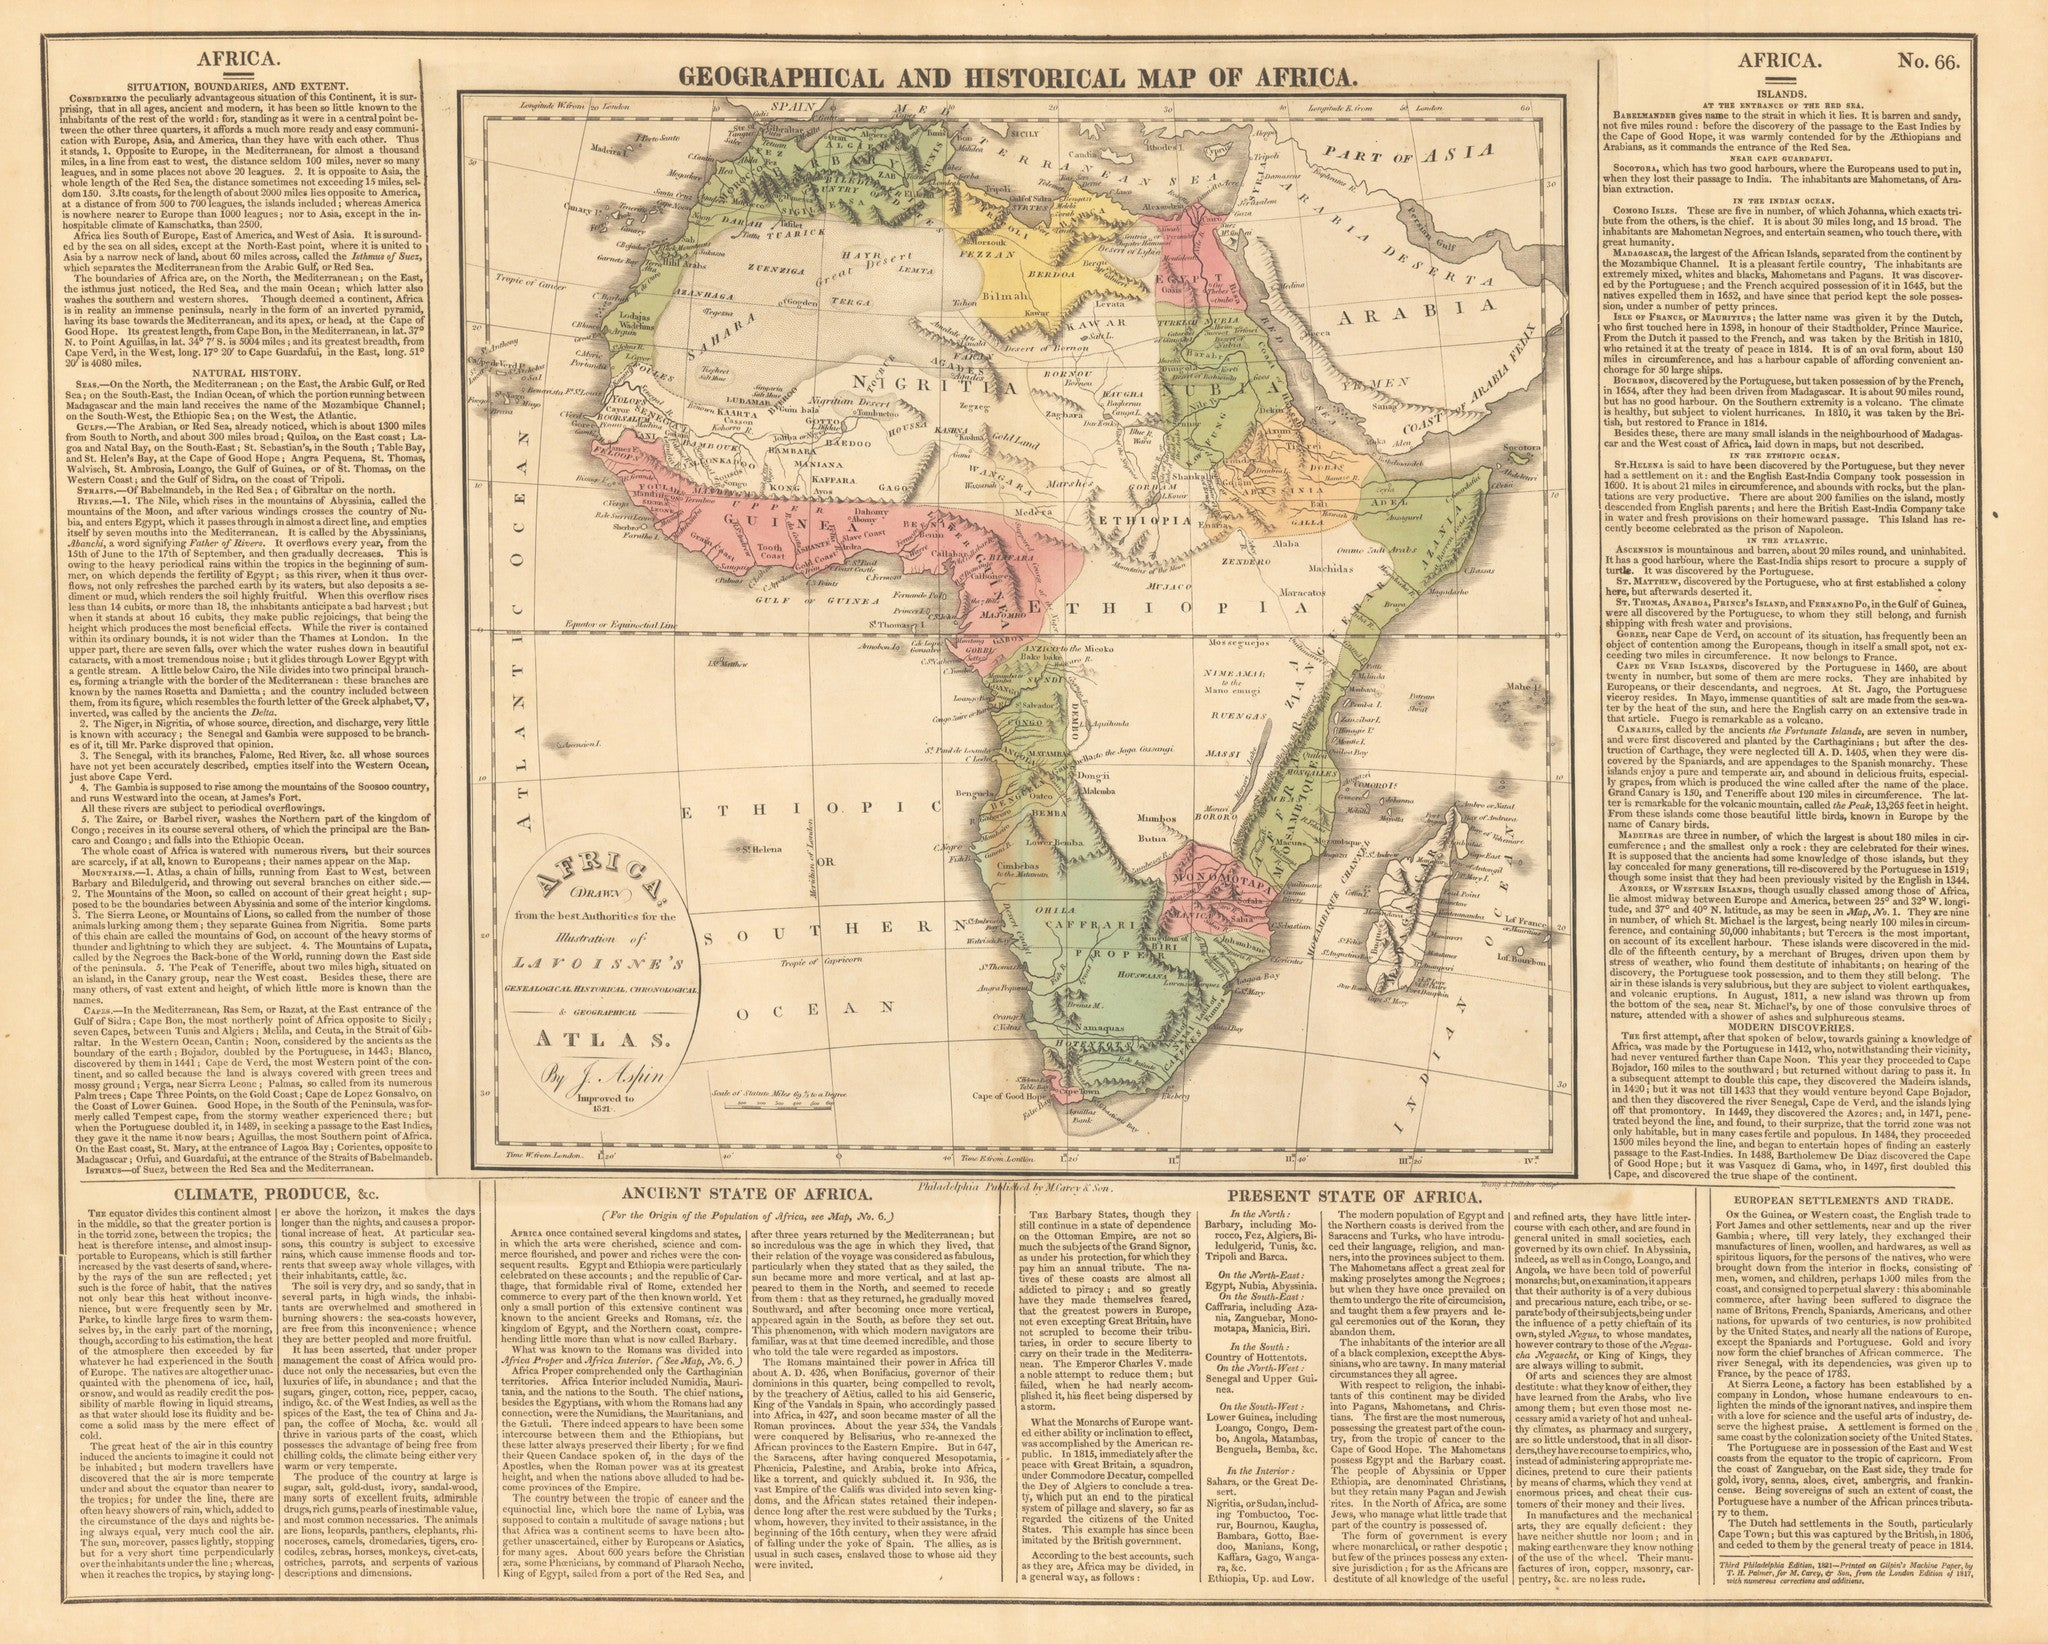 1821 Geographical and Historical Map of Africa